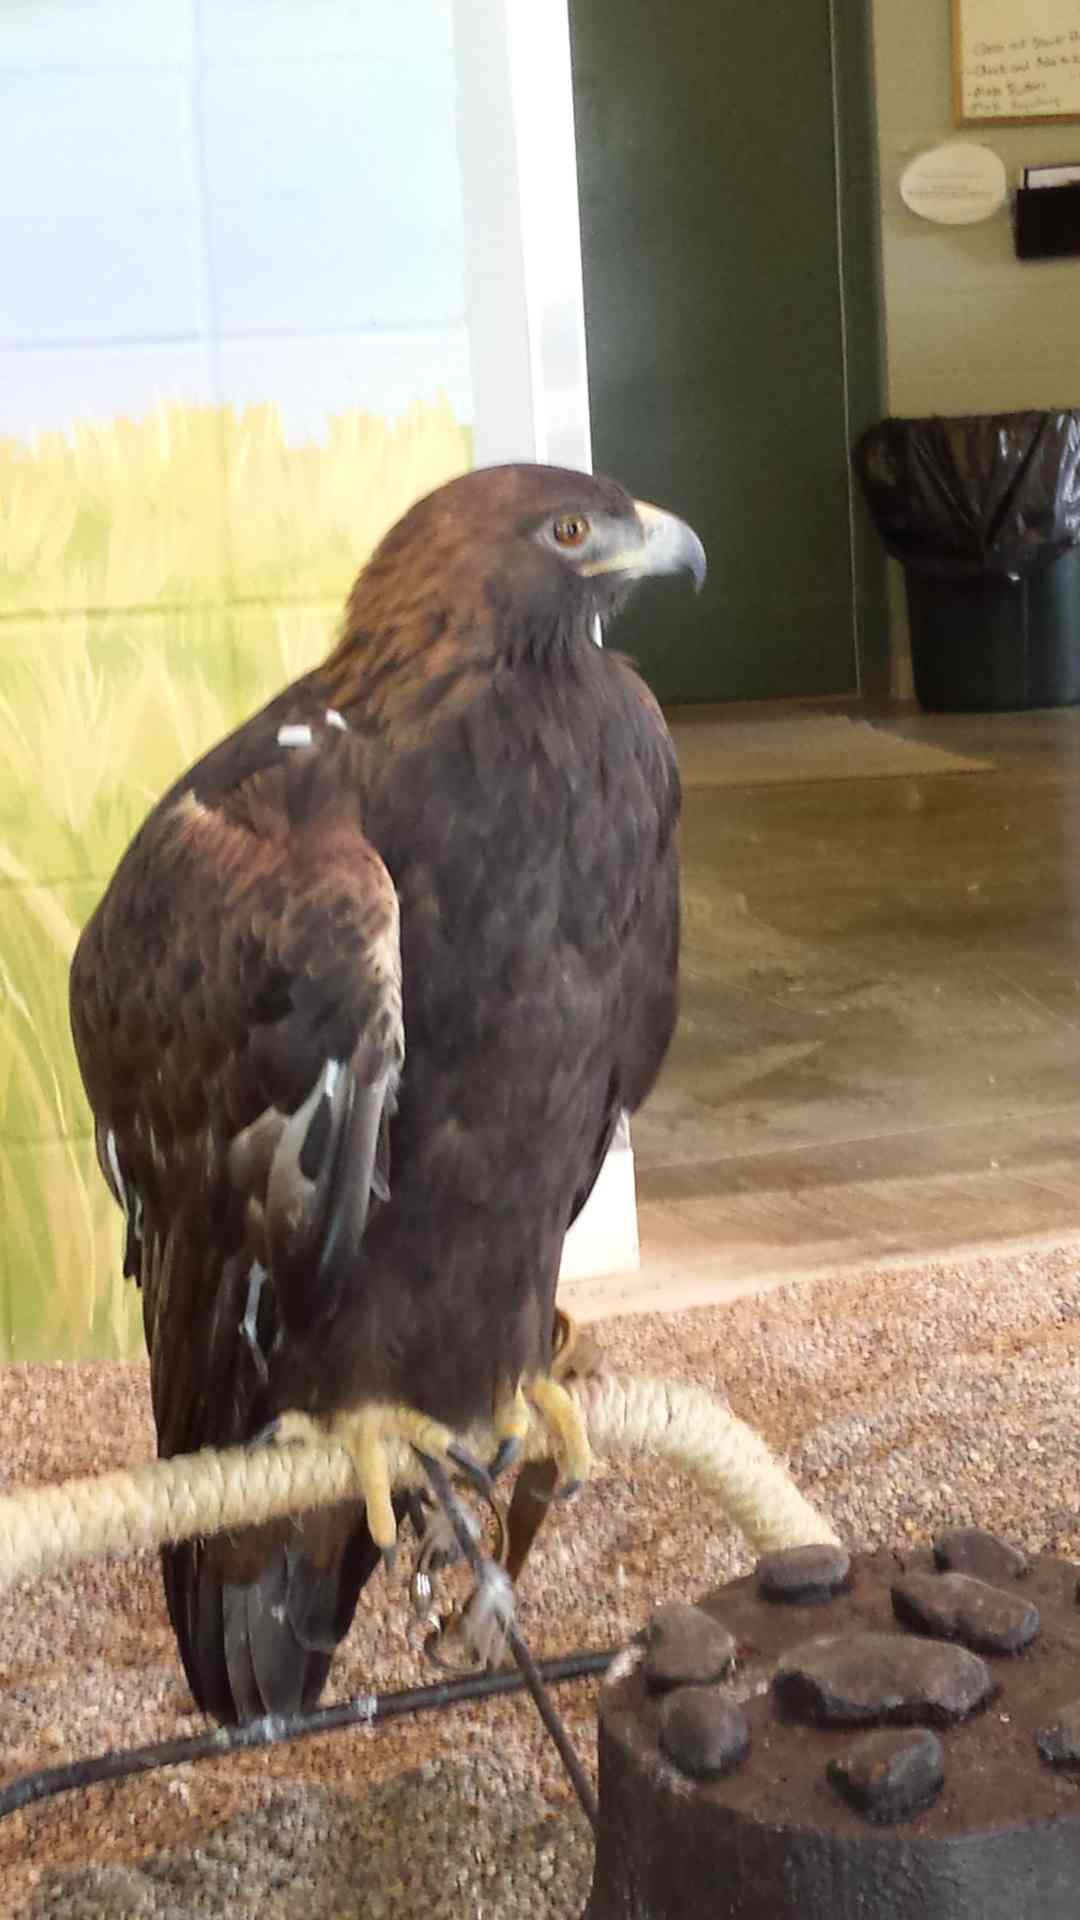 Golden Eagle at the National Eagle Center in Wabasha